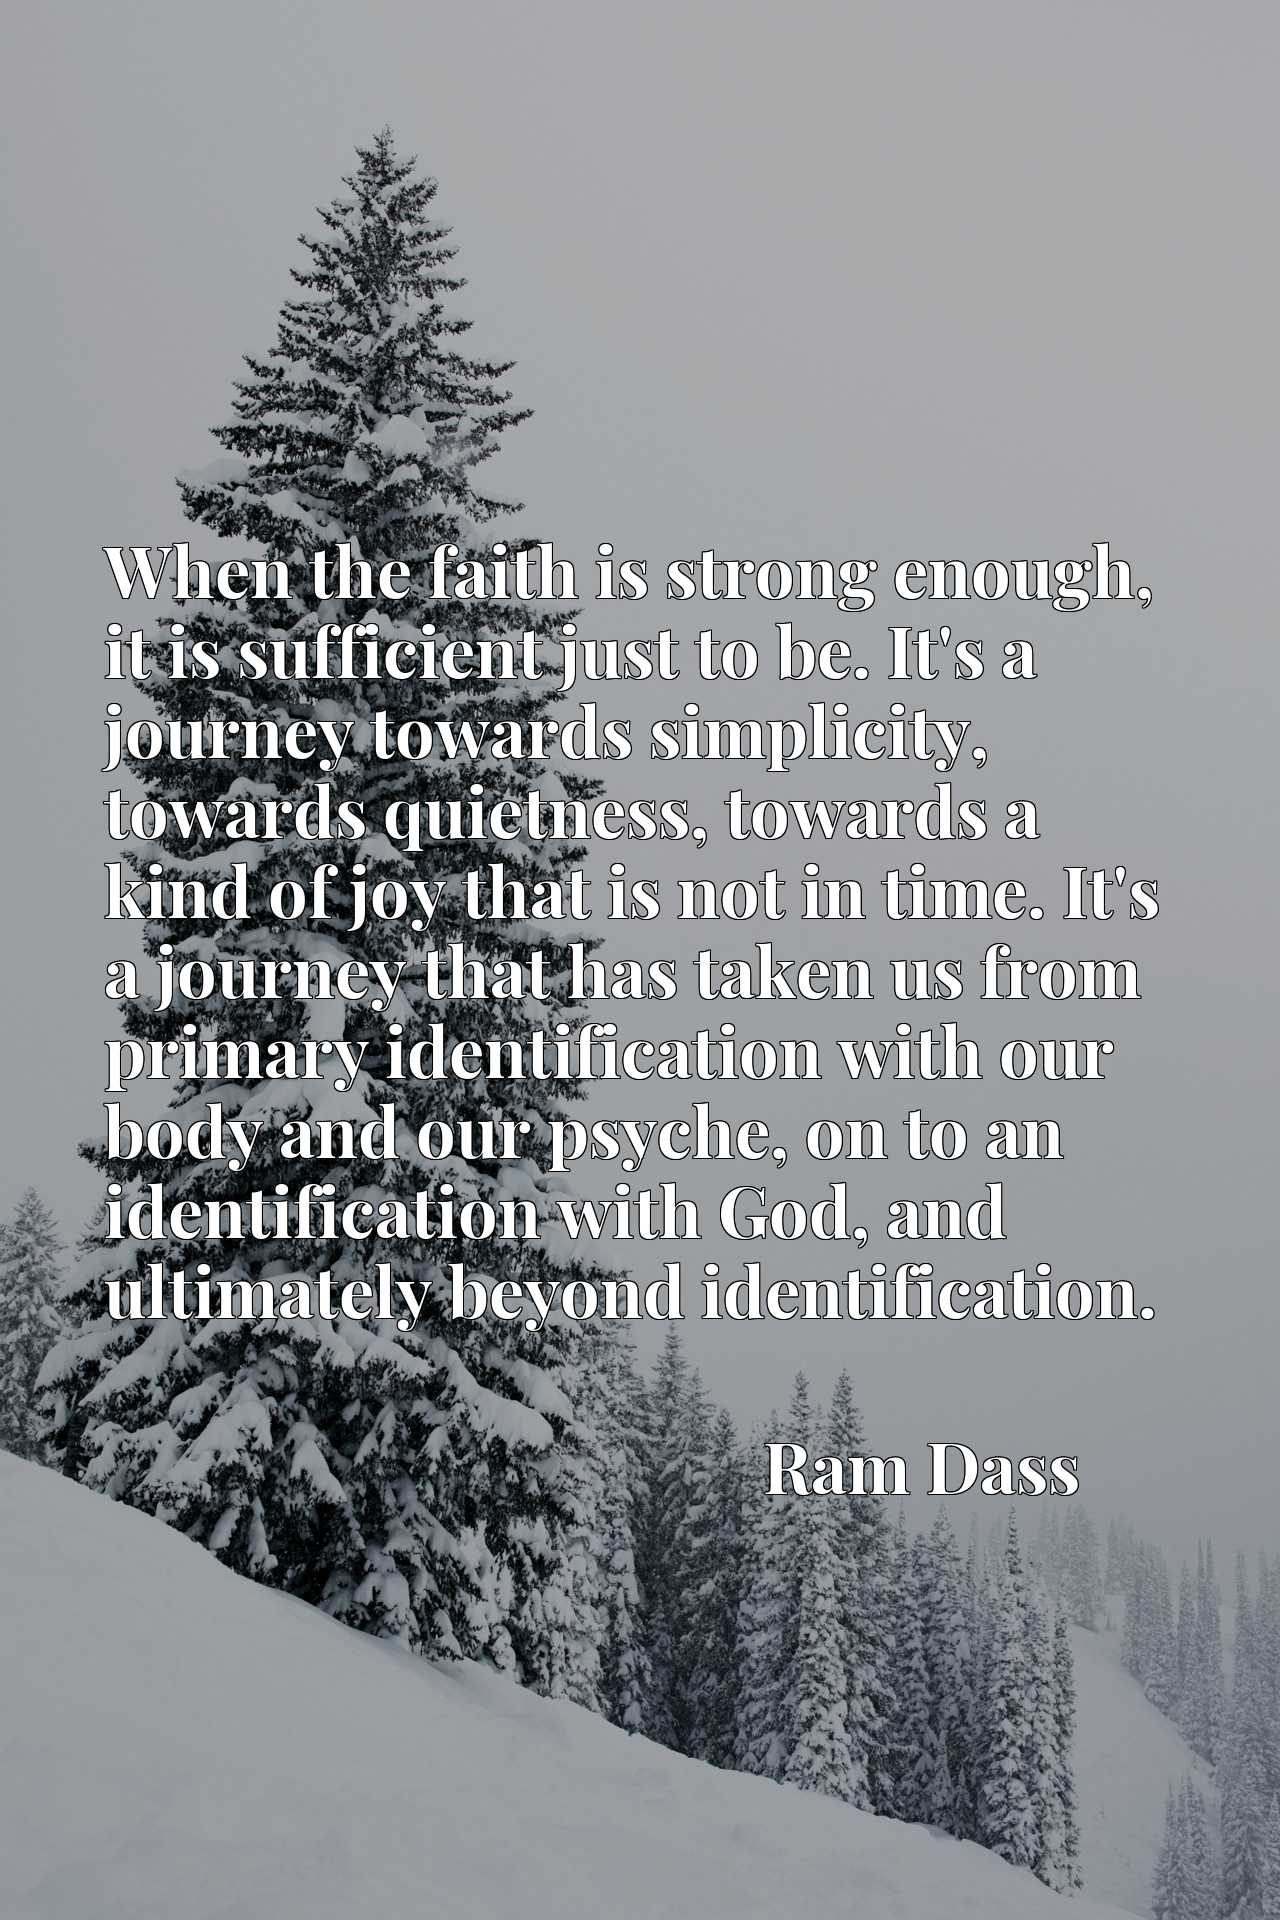 When the faith is strong enough, it is sufficient just to be. It's a journey towards simplicity, towards quietness, towards a kind of joy that is not in time. It's a journey that has taken us from primary identification with our body and our psyche, on to an identification with God, and ultimately beyond identification.